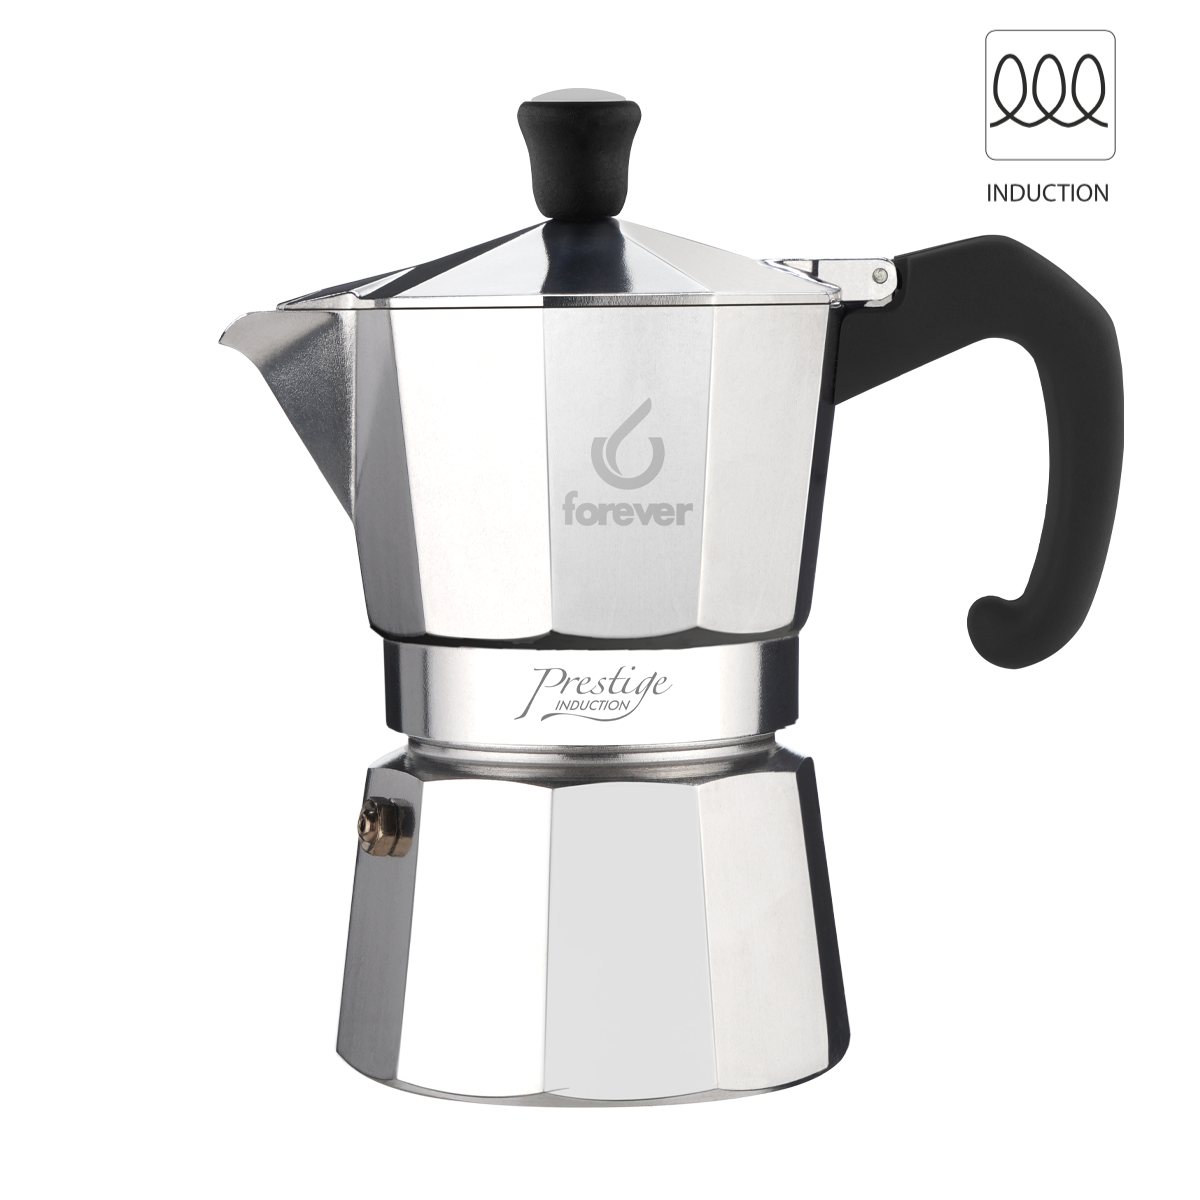 "Forever ™️MISS MOKA PRESTIGE"" ALUMINIUM-*INDUCTION 3 CUPS со Гратис 250 гр еспресо"